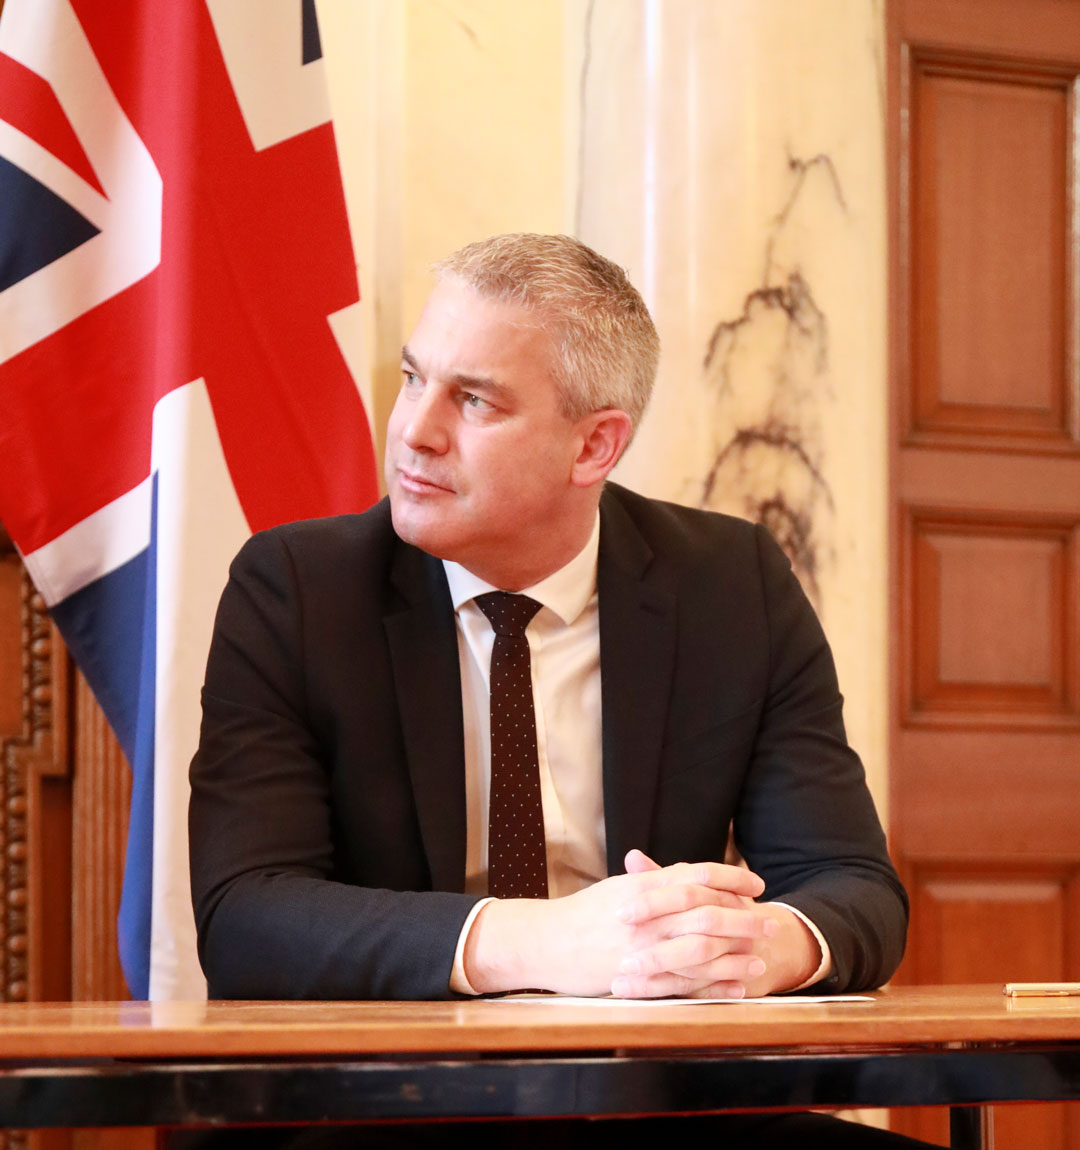 Once we've left the EU, UK nationals can continue to live, work & study in Norway, Iceland & Liechtenstein much as they do now. Their citizens will have the same rights in the UK.  Today @SteveBarclay signed the EEA EFTA Separation Agreement 🇮🇸🇱🇮🇳🇴  https://www.gov.uk/government/news/uk-and-eea-efta-states-sign-separation-agreement…